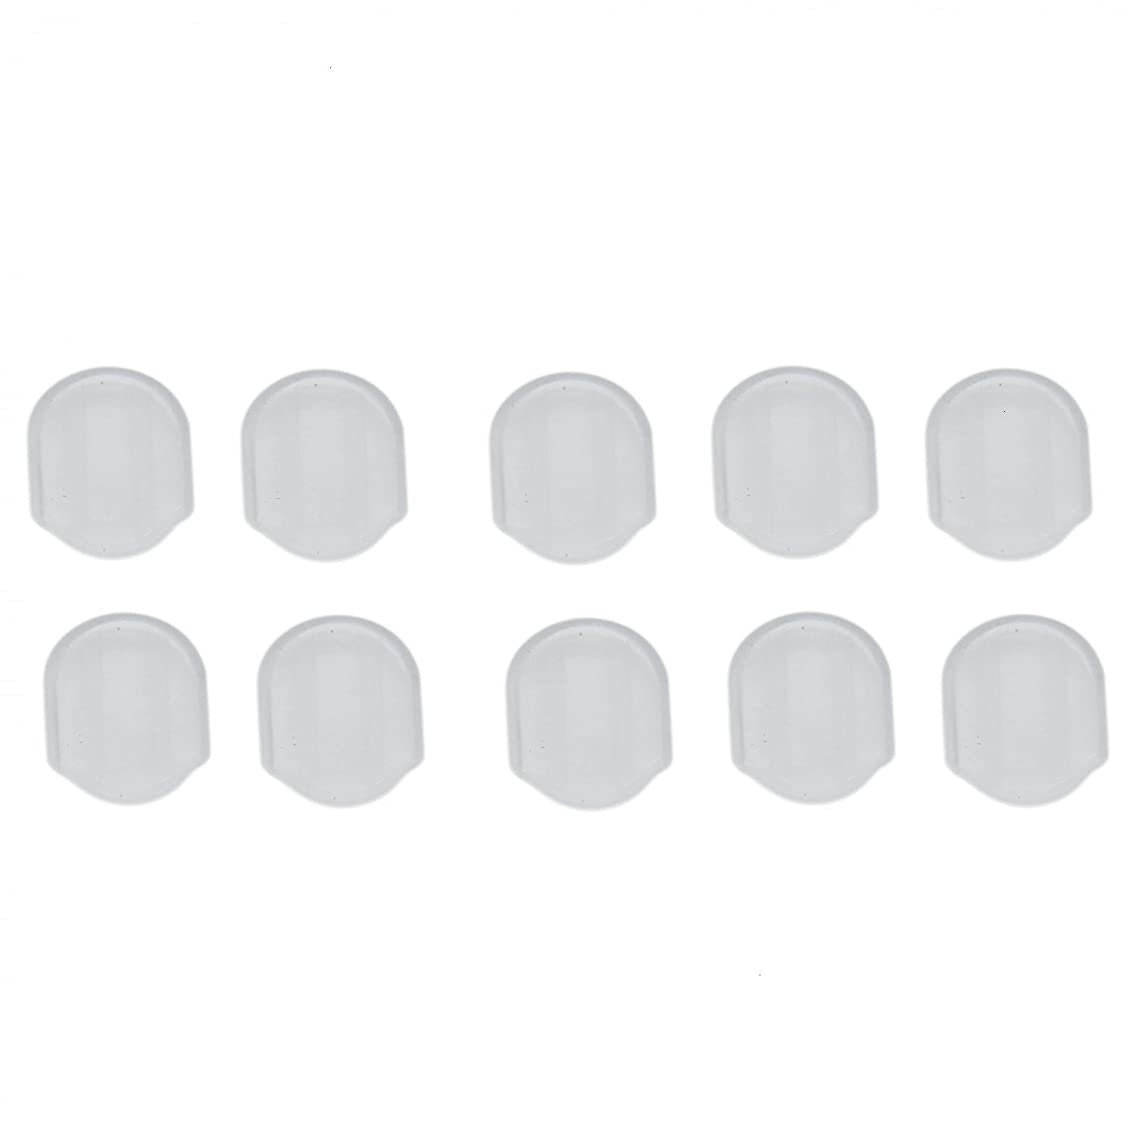 IDS 30PCS Comfort Pads for Clip On Earrings Silicone Earring Pads Cushion For Clip Back Earrings